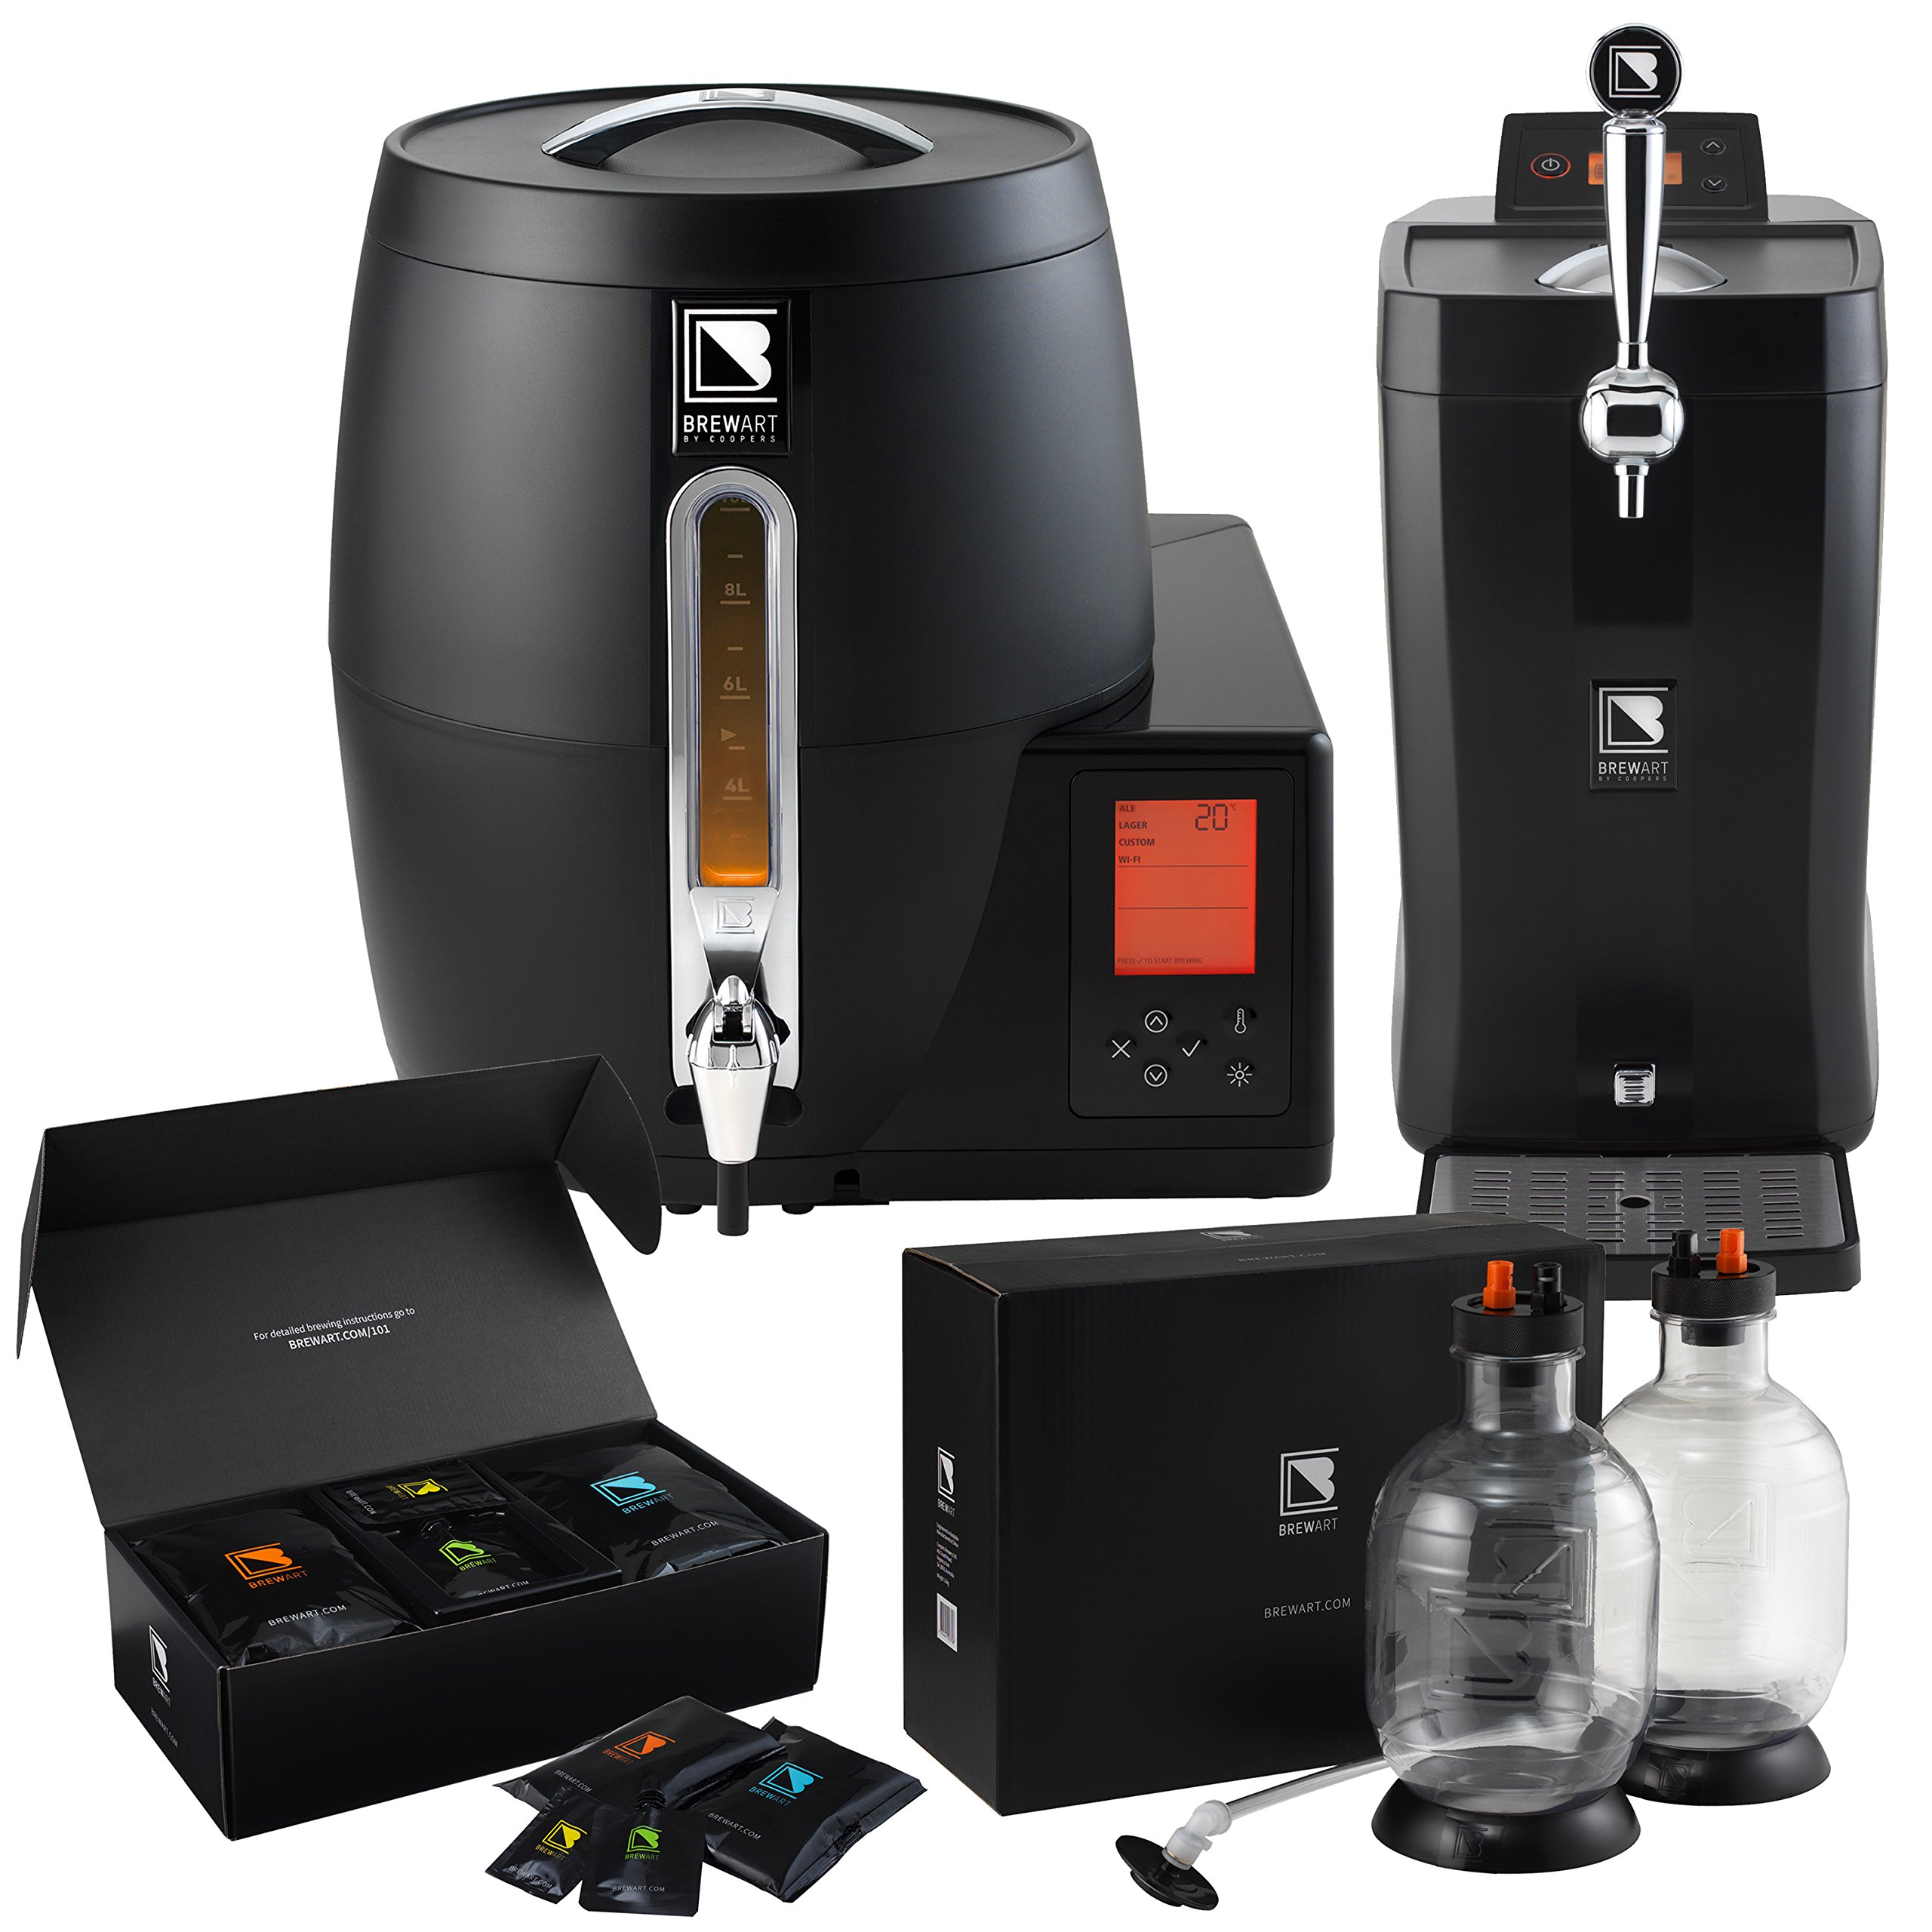 BrewArt Complete Beer Brewing and Dispensing System with BrewPrint and Kegging Pack